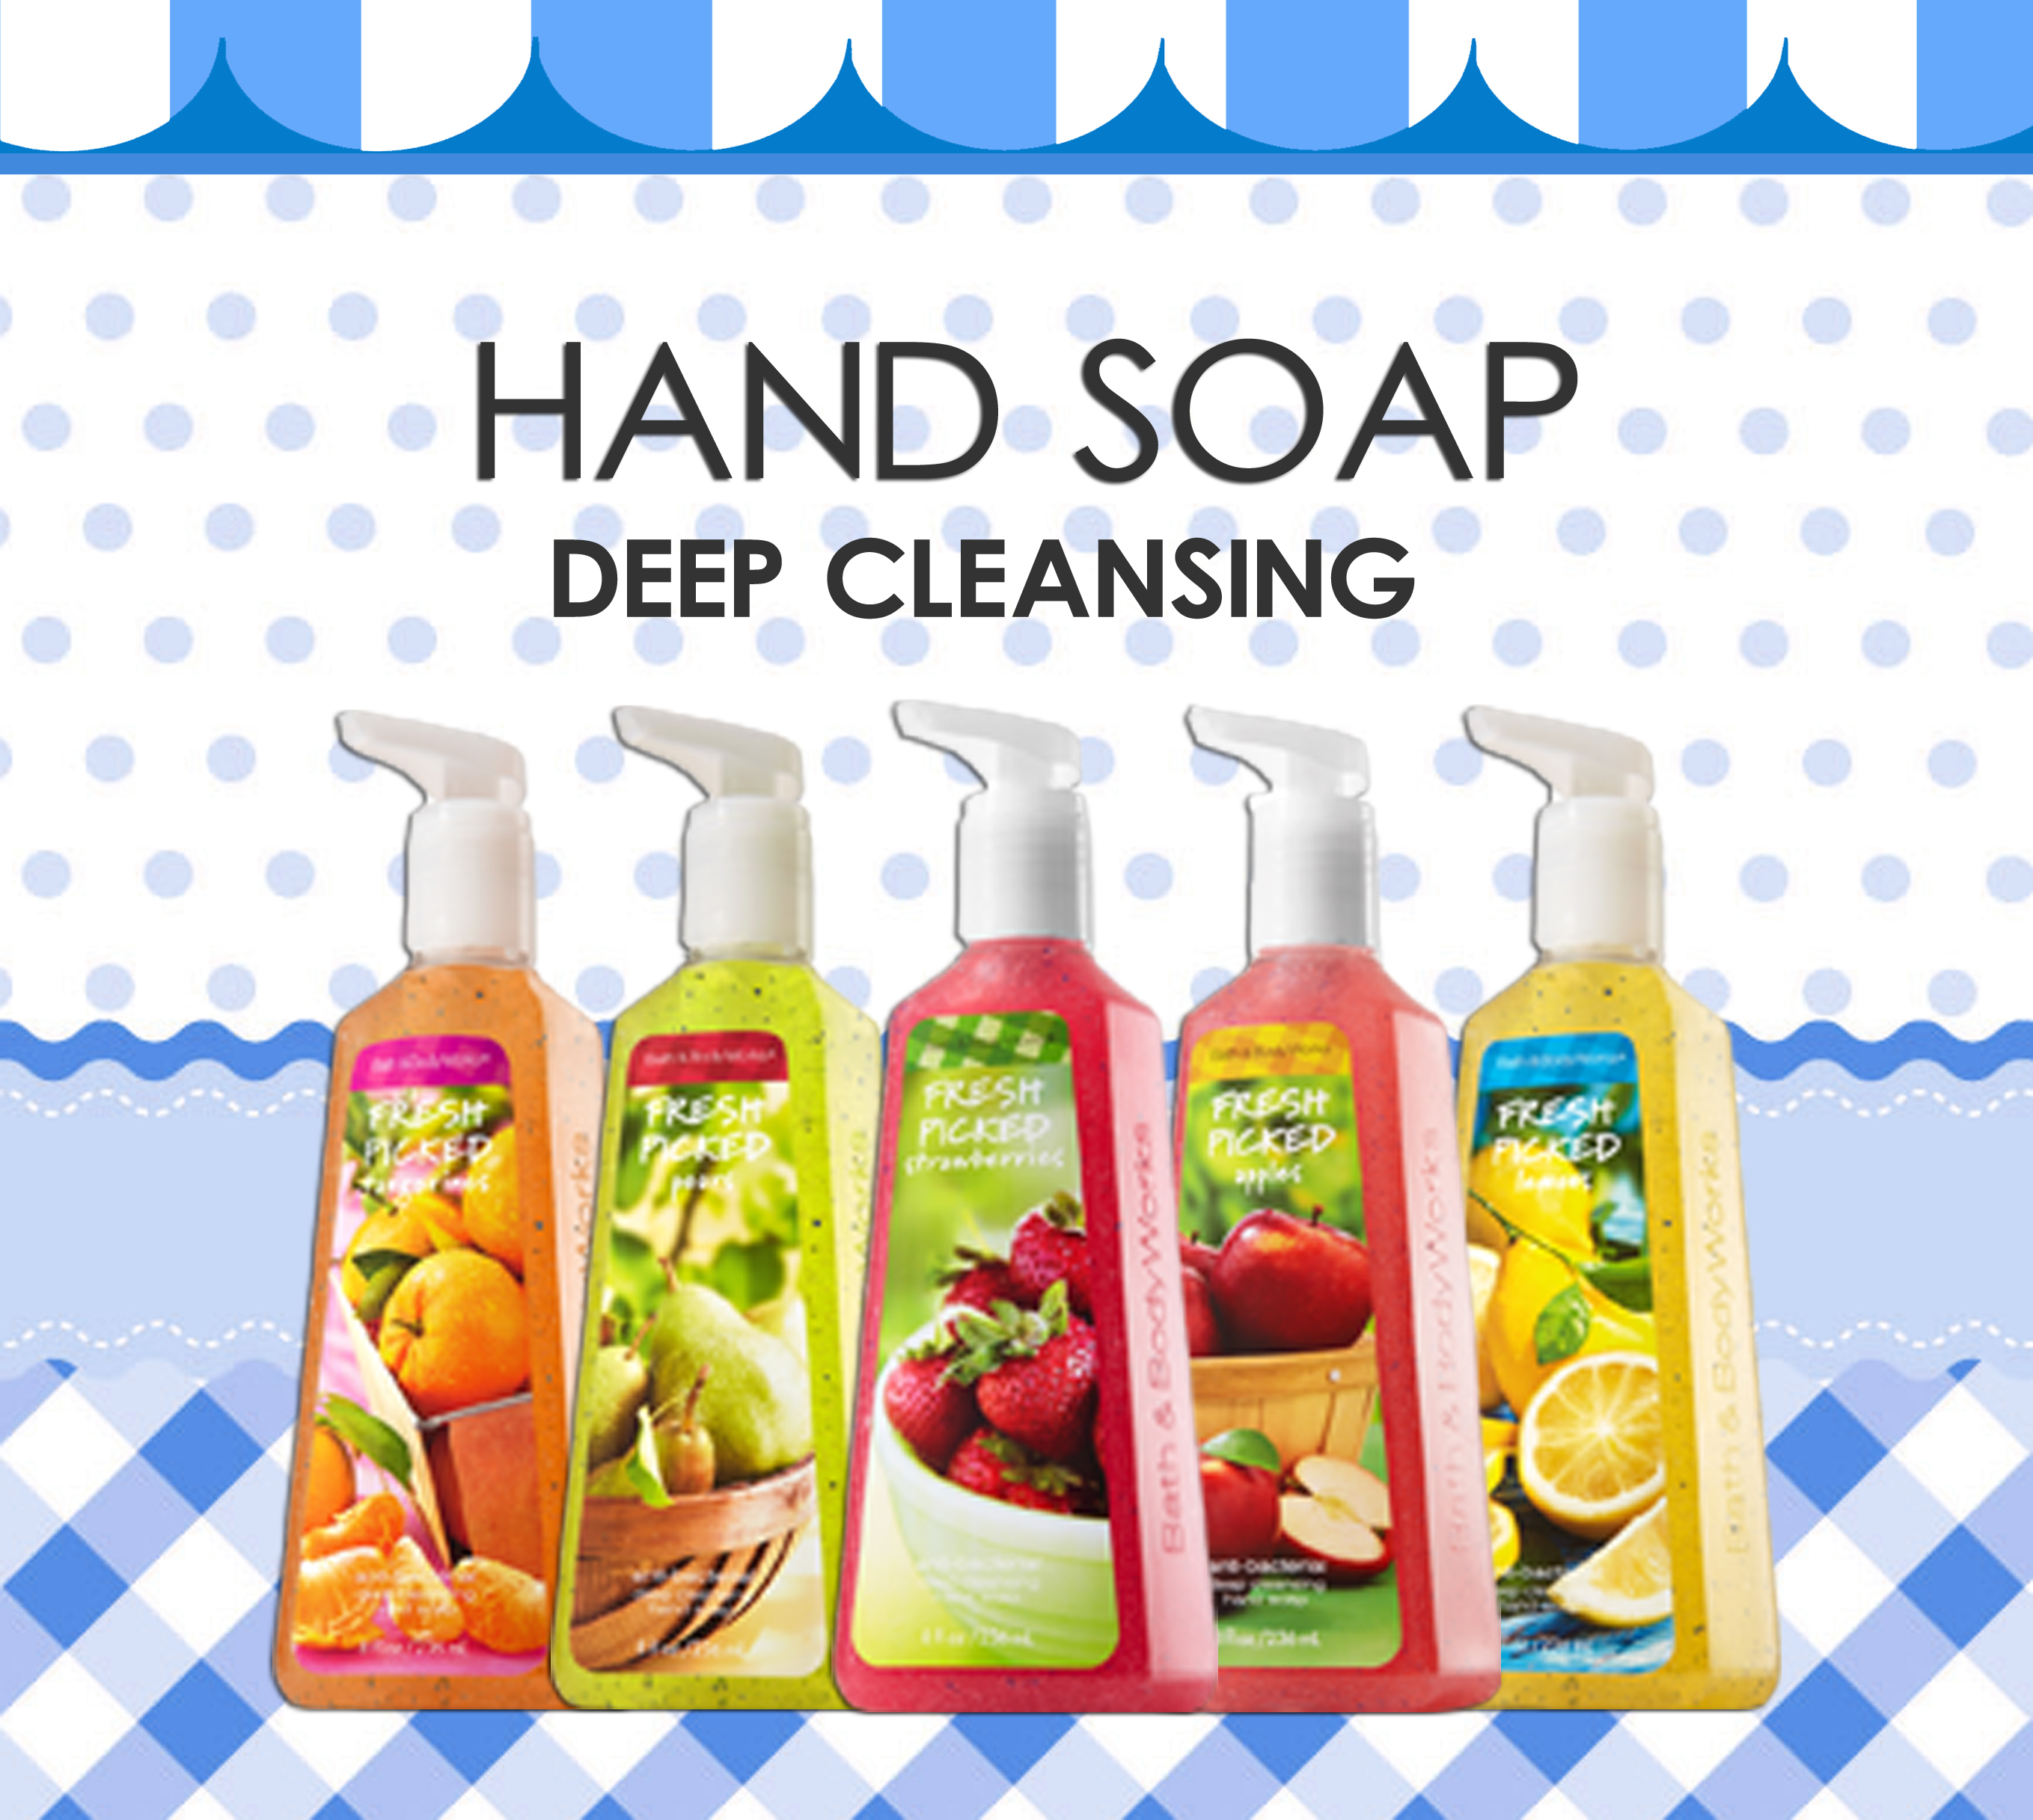 Anti-Bacterial Hand Soap (Deep Cleansing)